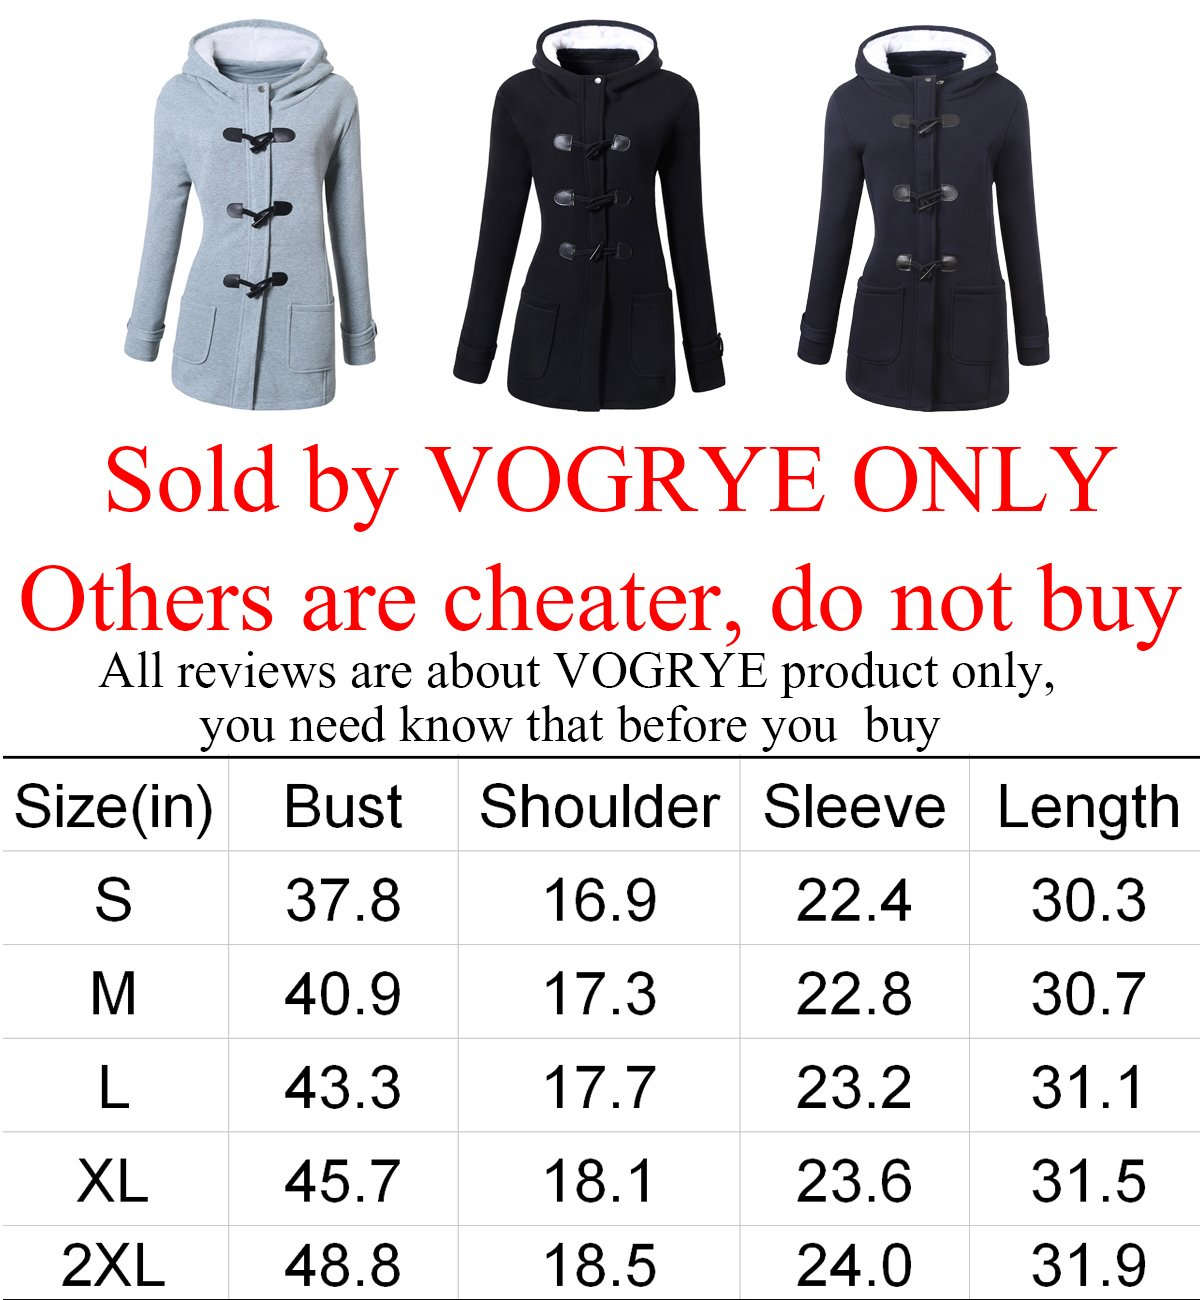 VOGRYE Womens Winter Fashion Outdoor Warm Wool Blended Classic Pea Coat Jacket Black Medium by VOGRYE (Image #2)